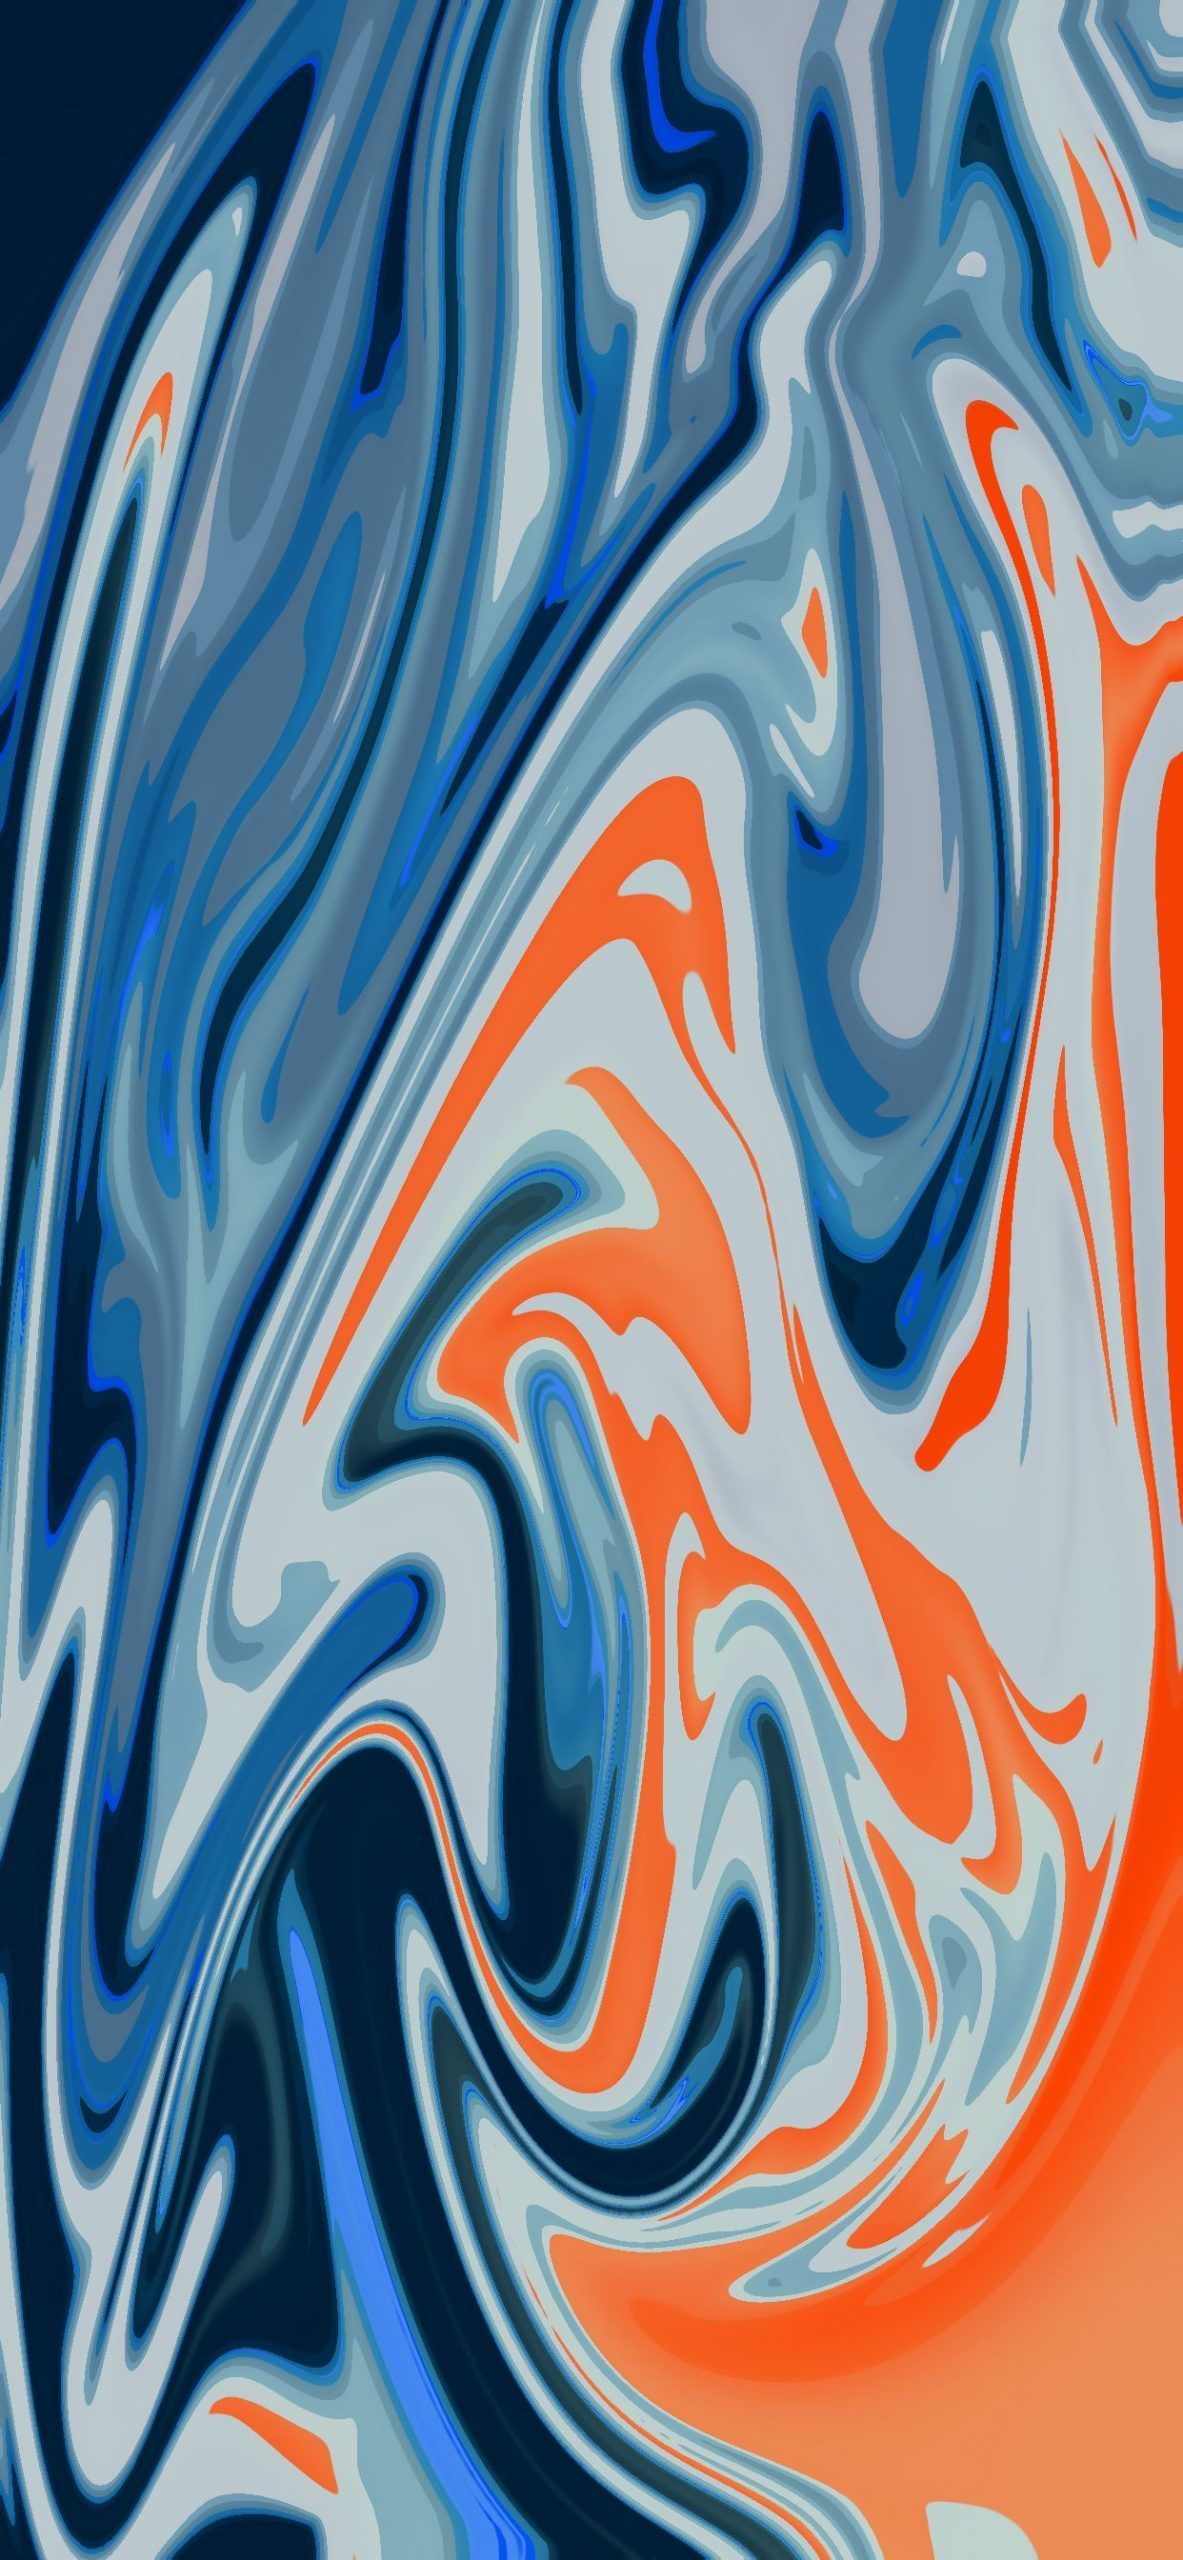 Sony Xperia Lock Screen 4k Abstract Wallpapers Download Traxzee Xperia Wallpaper Abstract Wallpaper Wallpaper